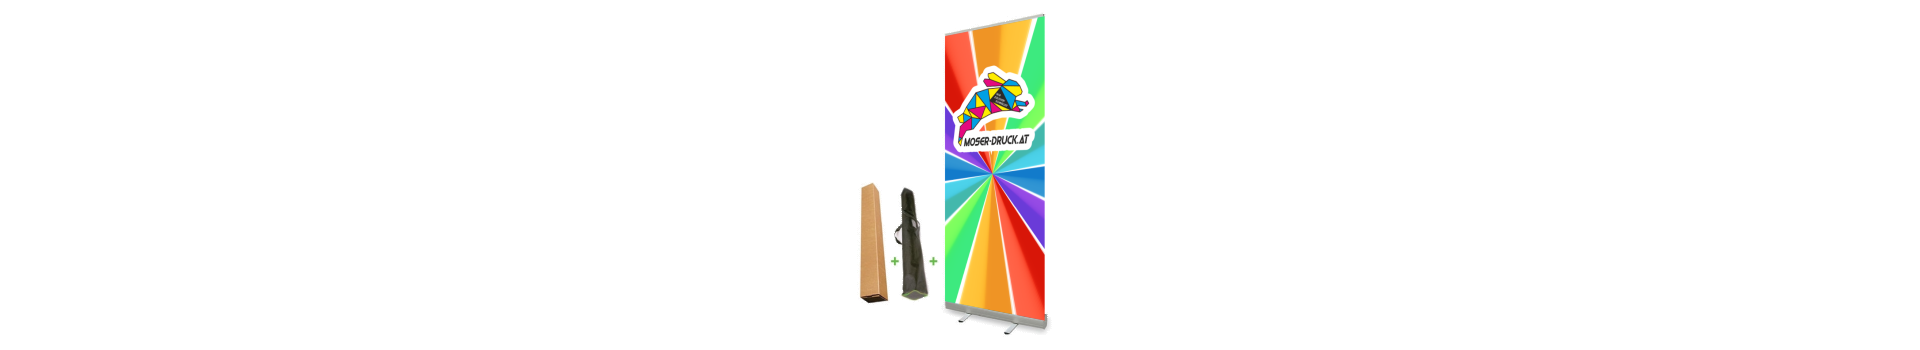 Roll-UP Folien